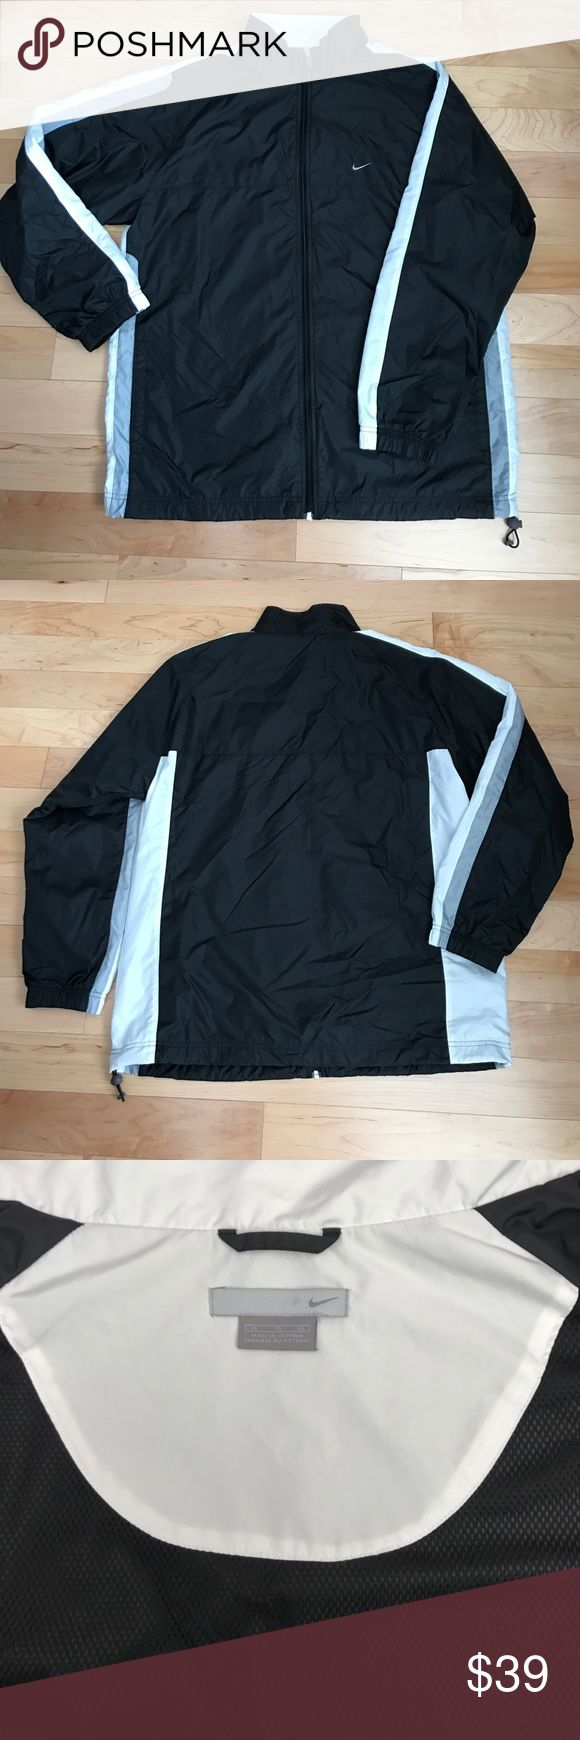 Nwot XL nylon Nike sport jacket Very cool nylon with vented air mesh inside with drawstring adjustable at the waist, brand-new without tags's Nike Jackets & Coats Windbreakers